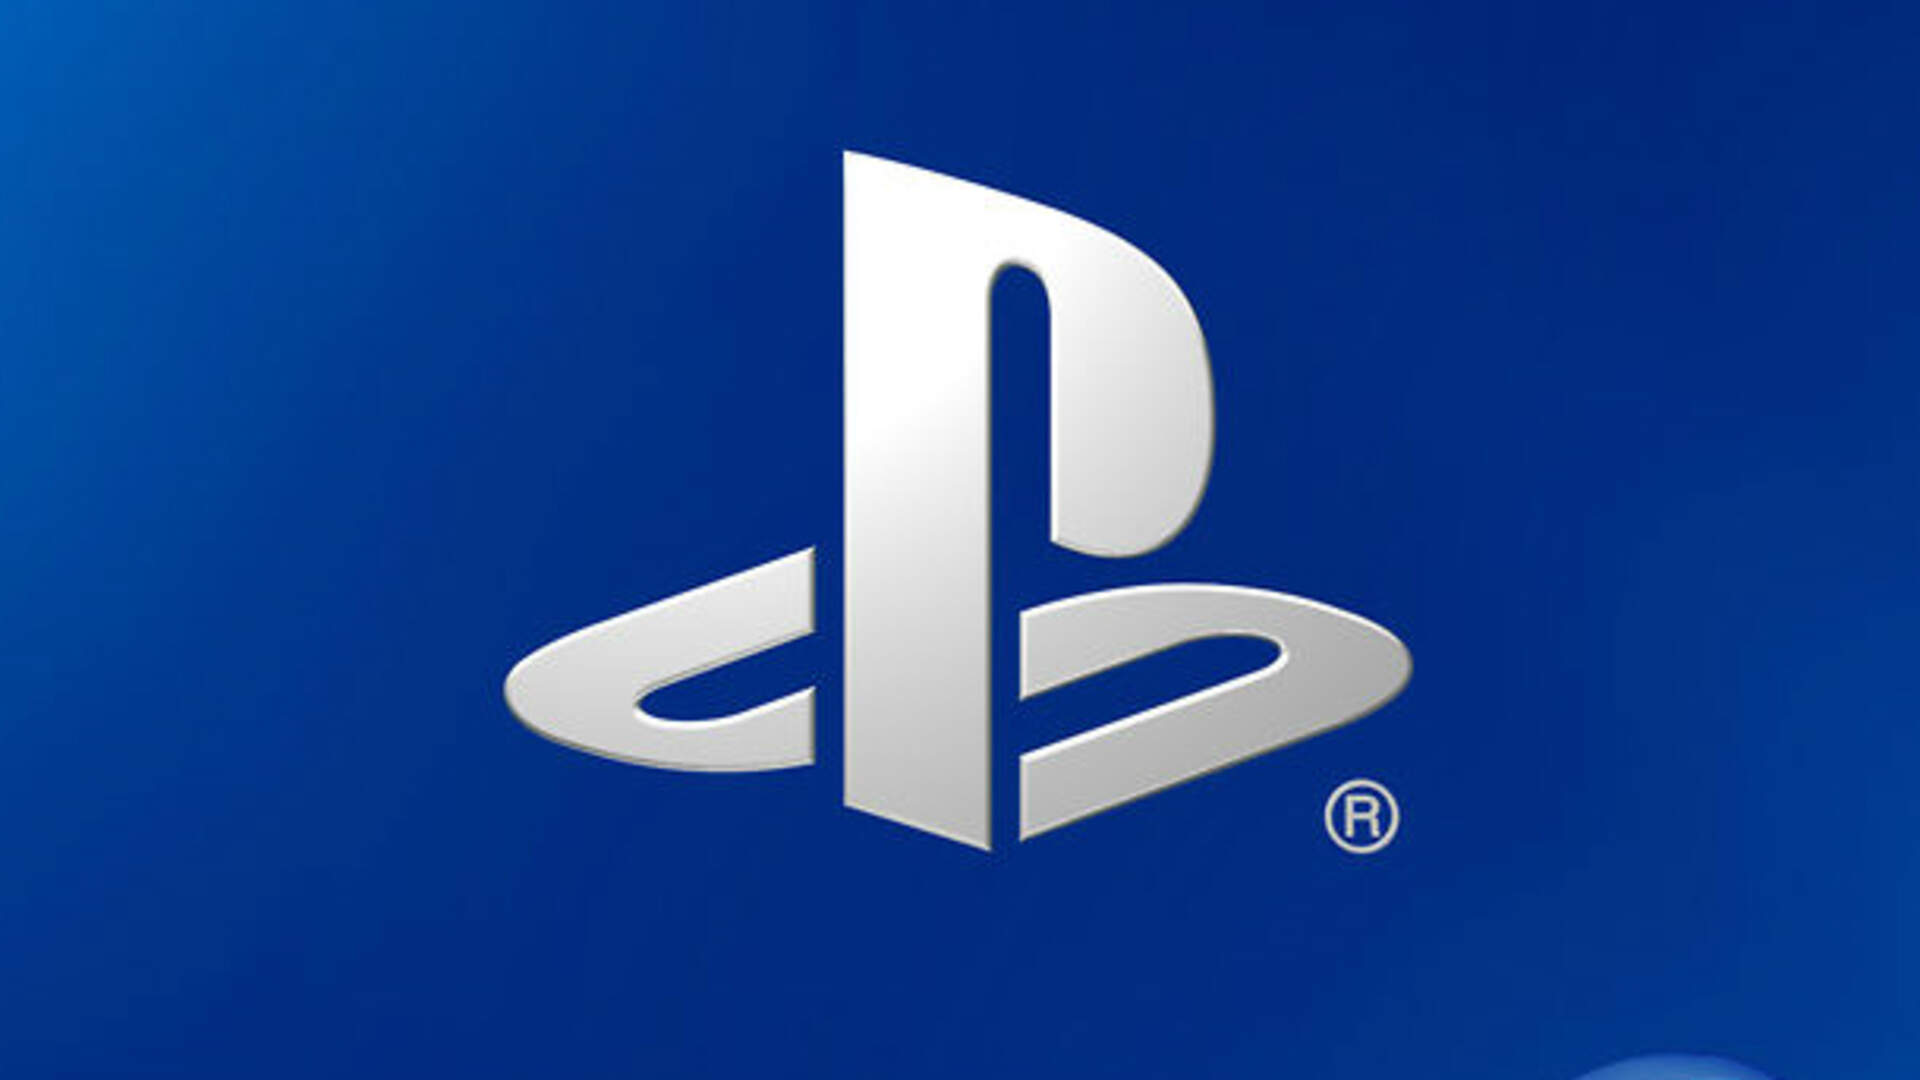 Video Game Companies are Reportedly Getting Ready for the Great PSN Username Change